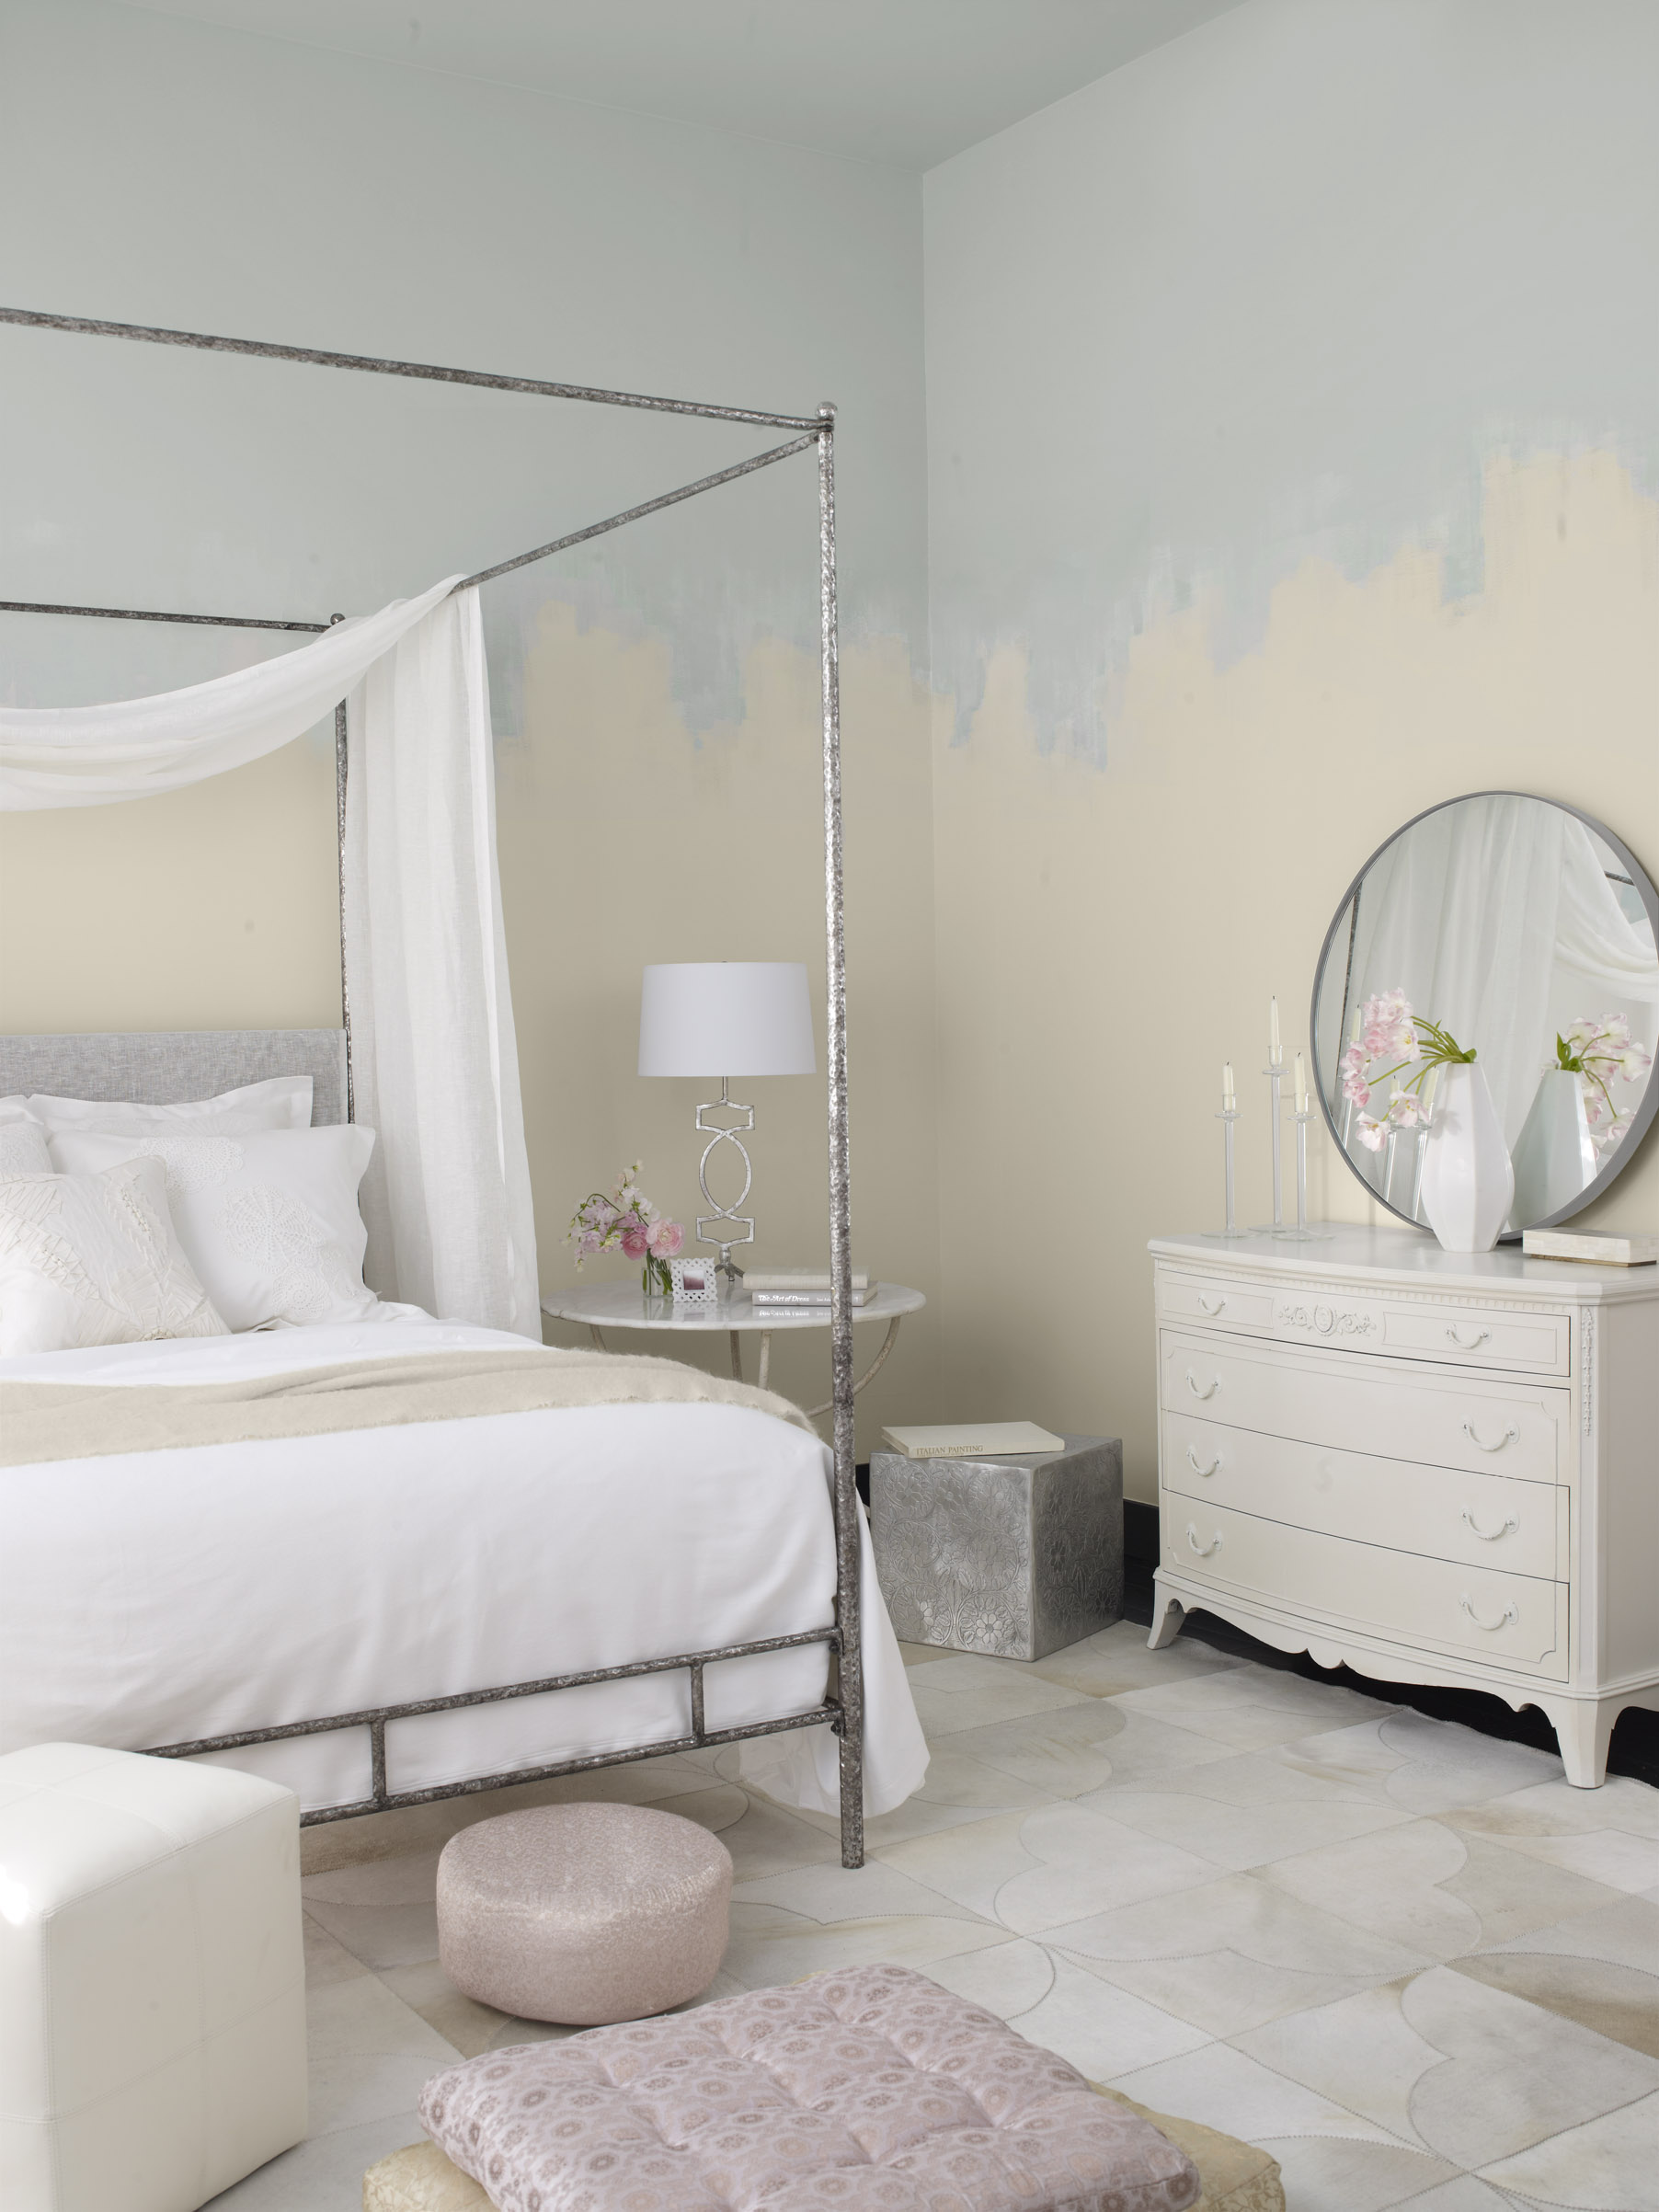 2017 Sherwin Williams Color Of The Year Home Color Trends 2011 Day 2 Spirited And Dreamy